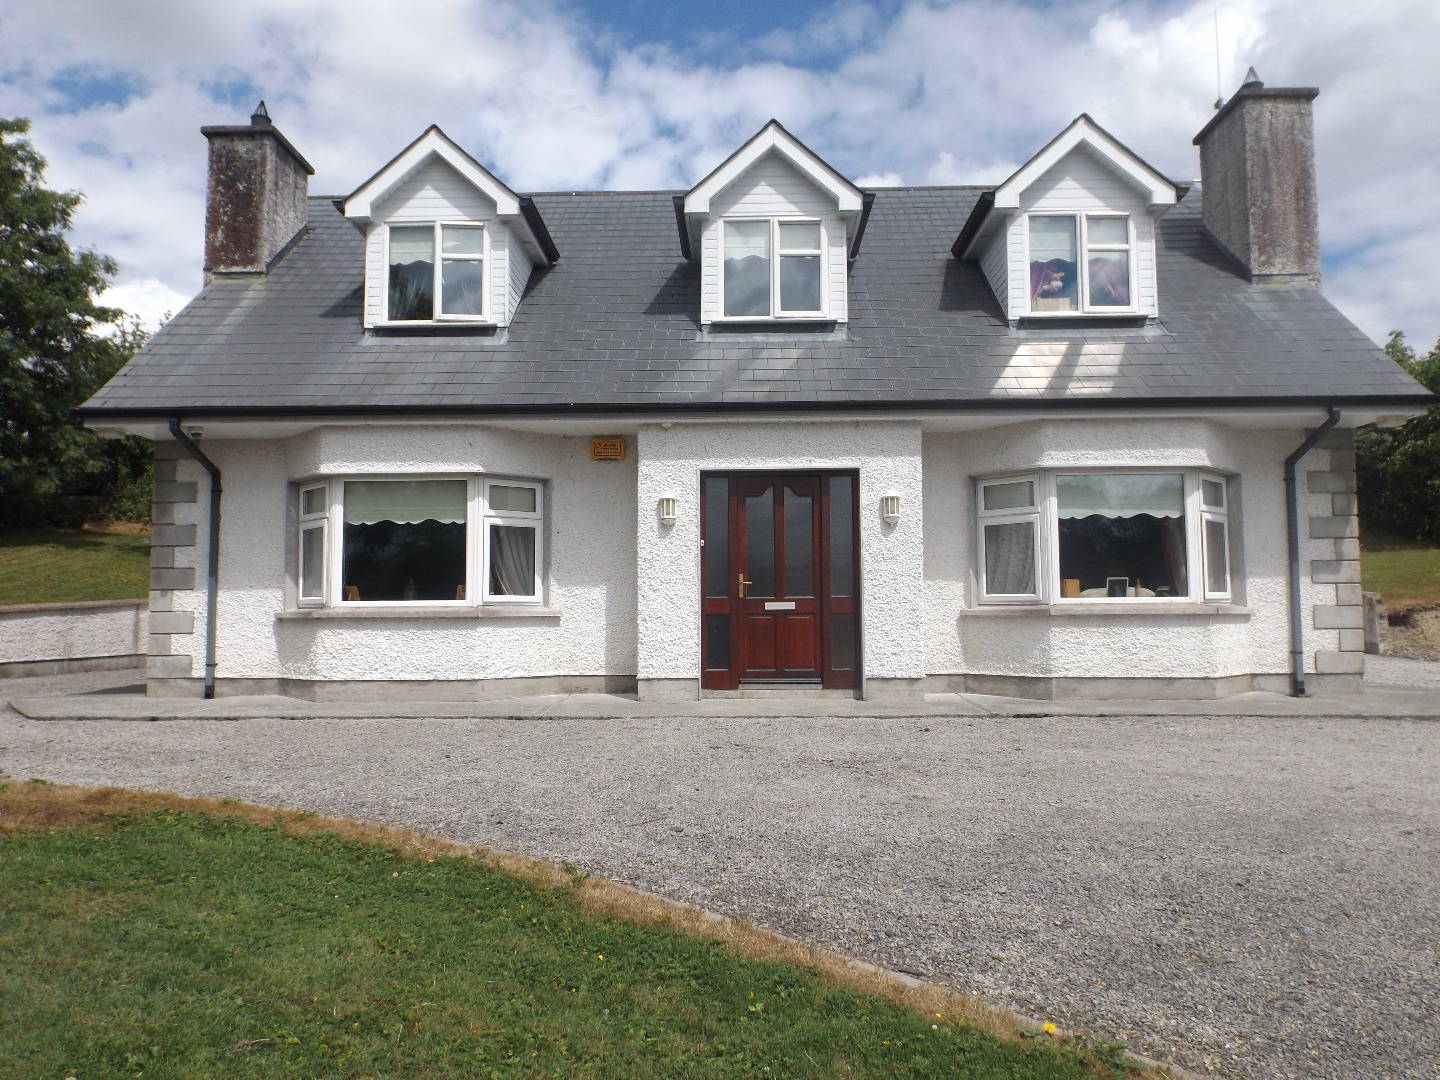 4 bed House for sale on Drumgowna, Carrickmacross, Co. Monaghan - Property Image 1